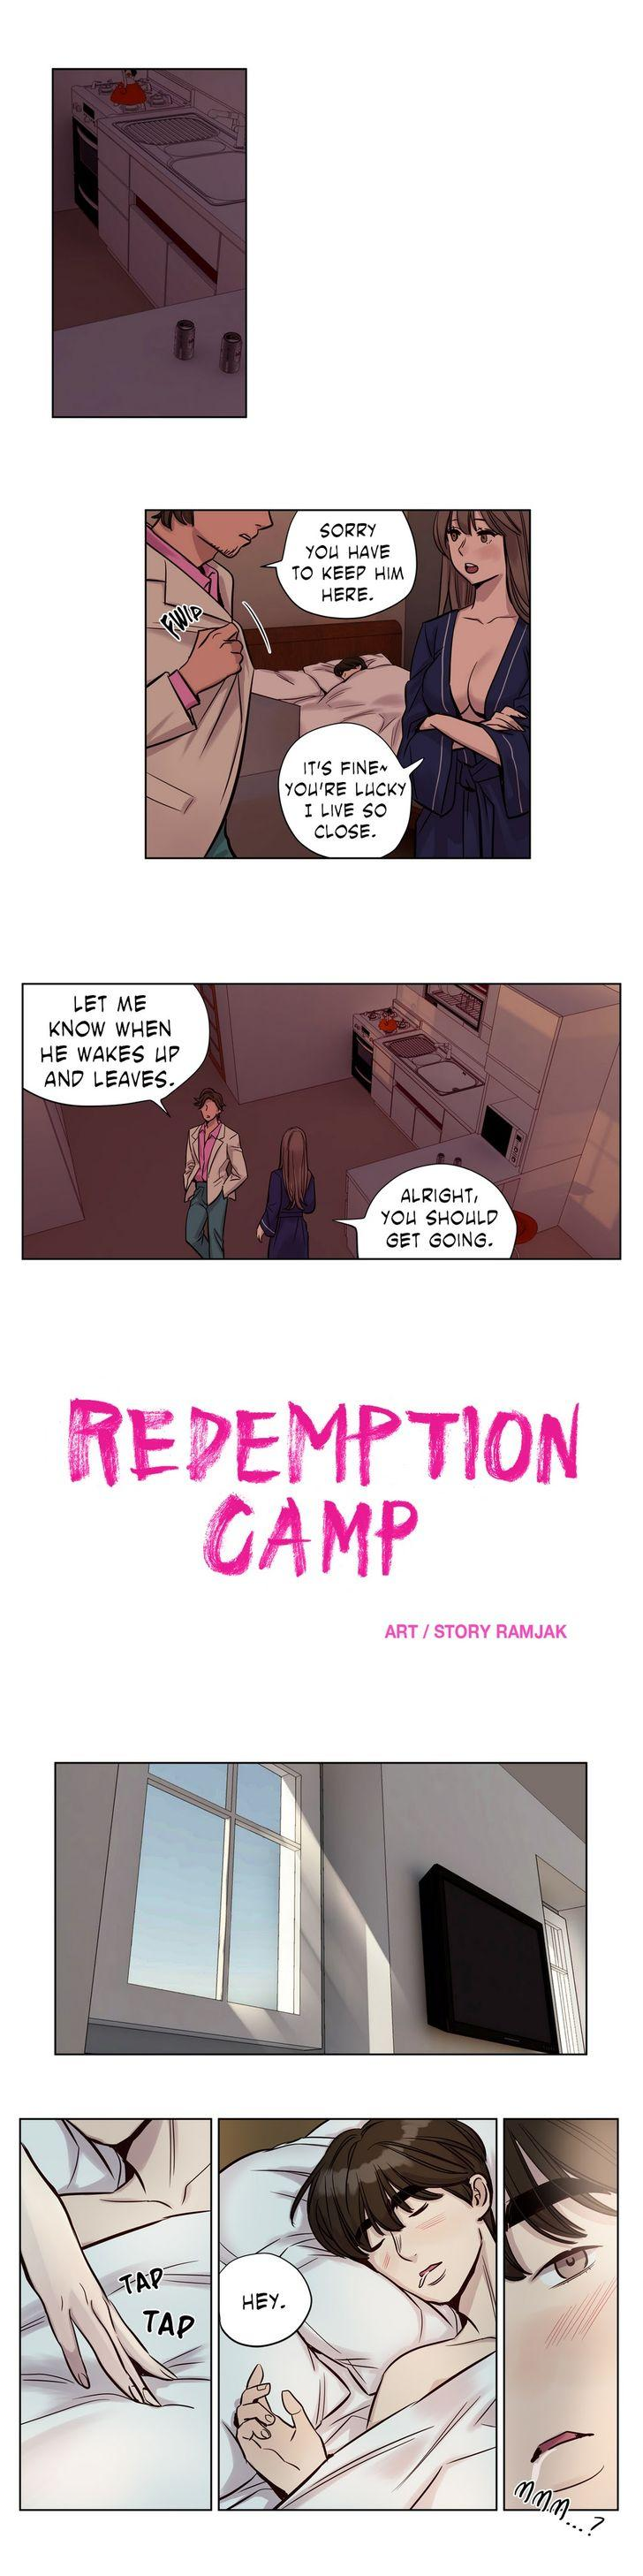 Redemption Camp - Chapter 22